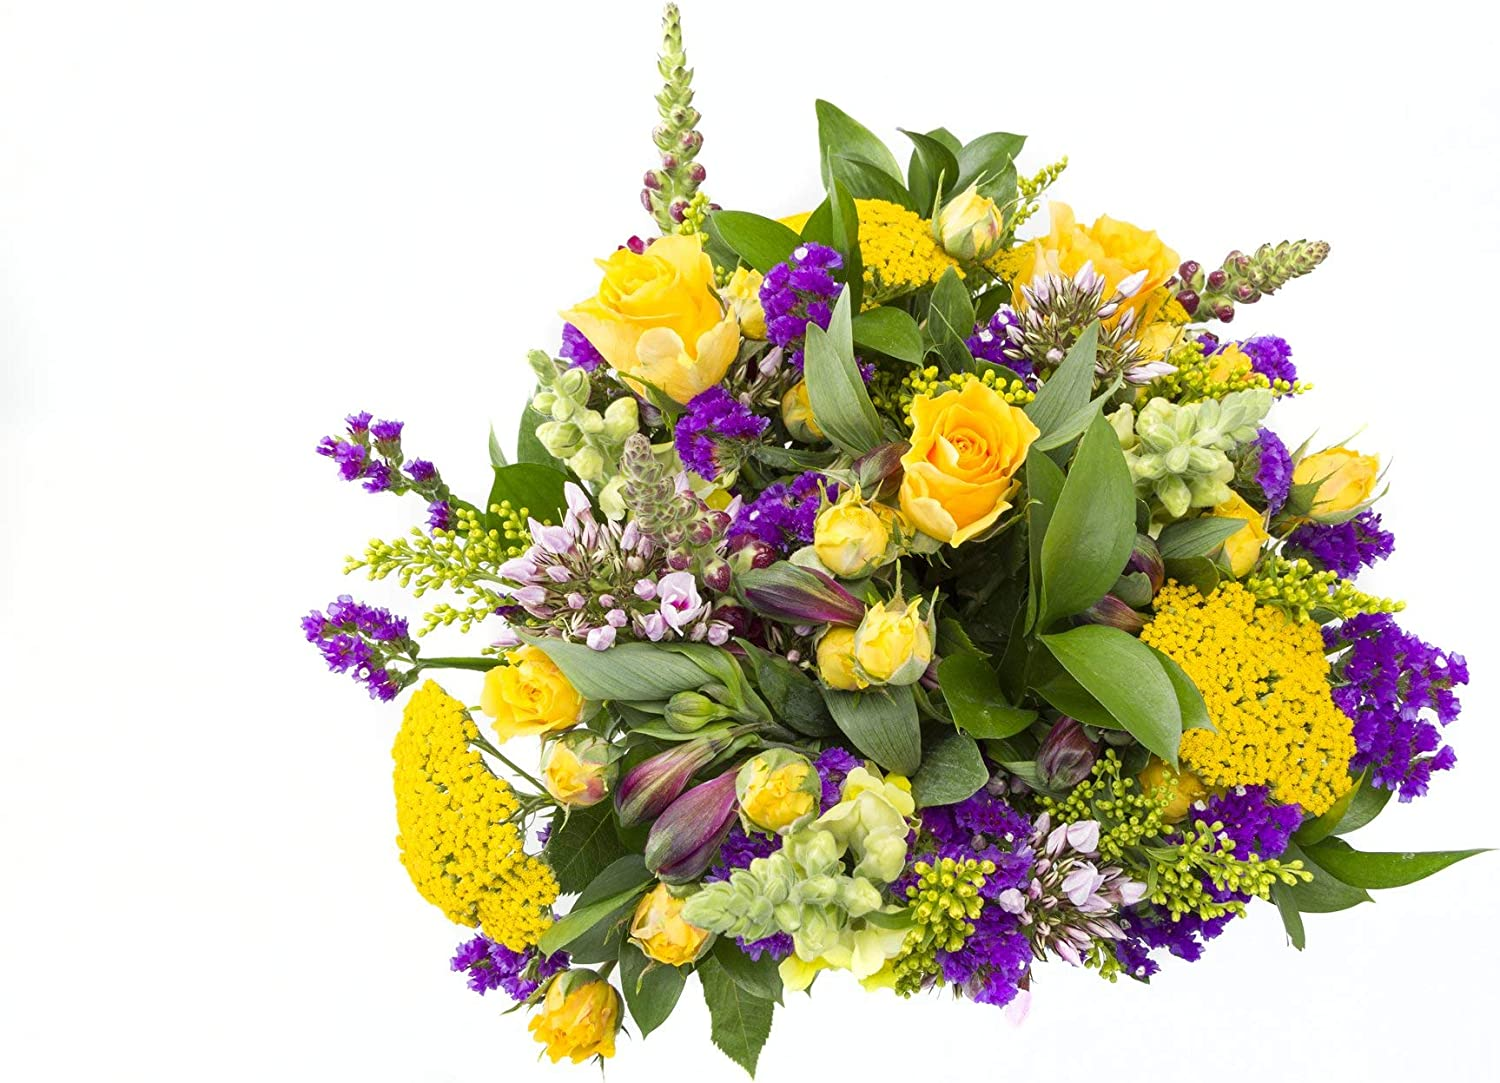 San Jose Mall Chichi Party Purple and Yellow Some reservation Snapdragons Flowers Roses with